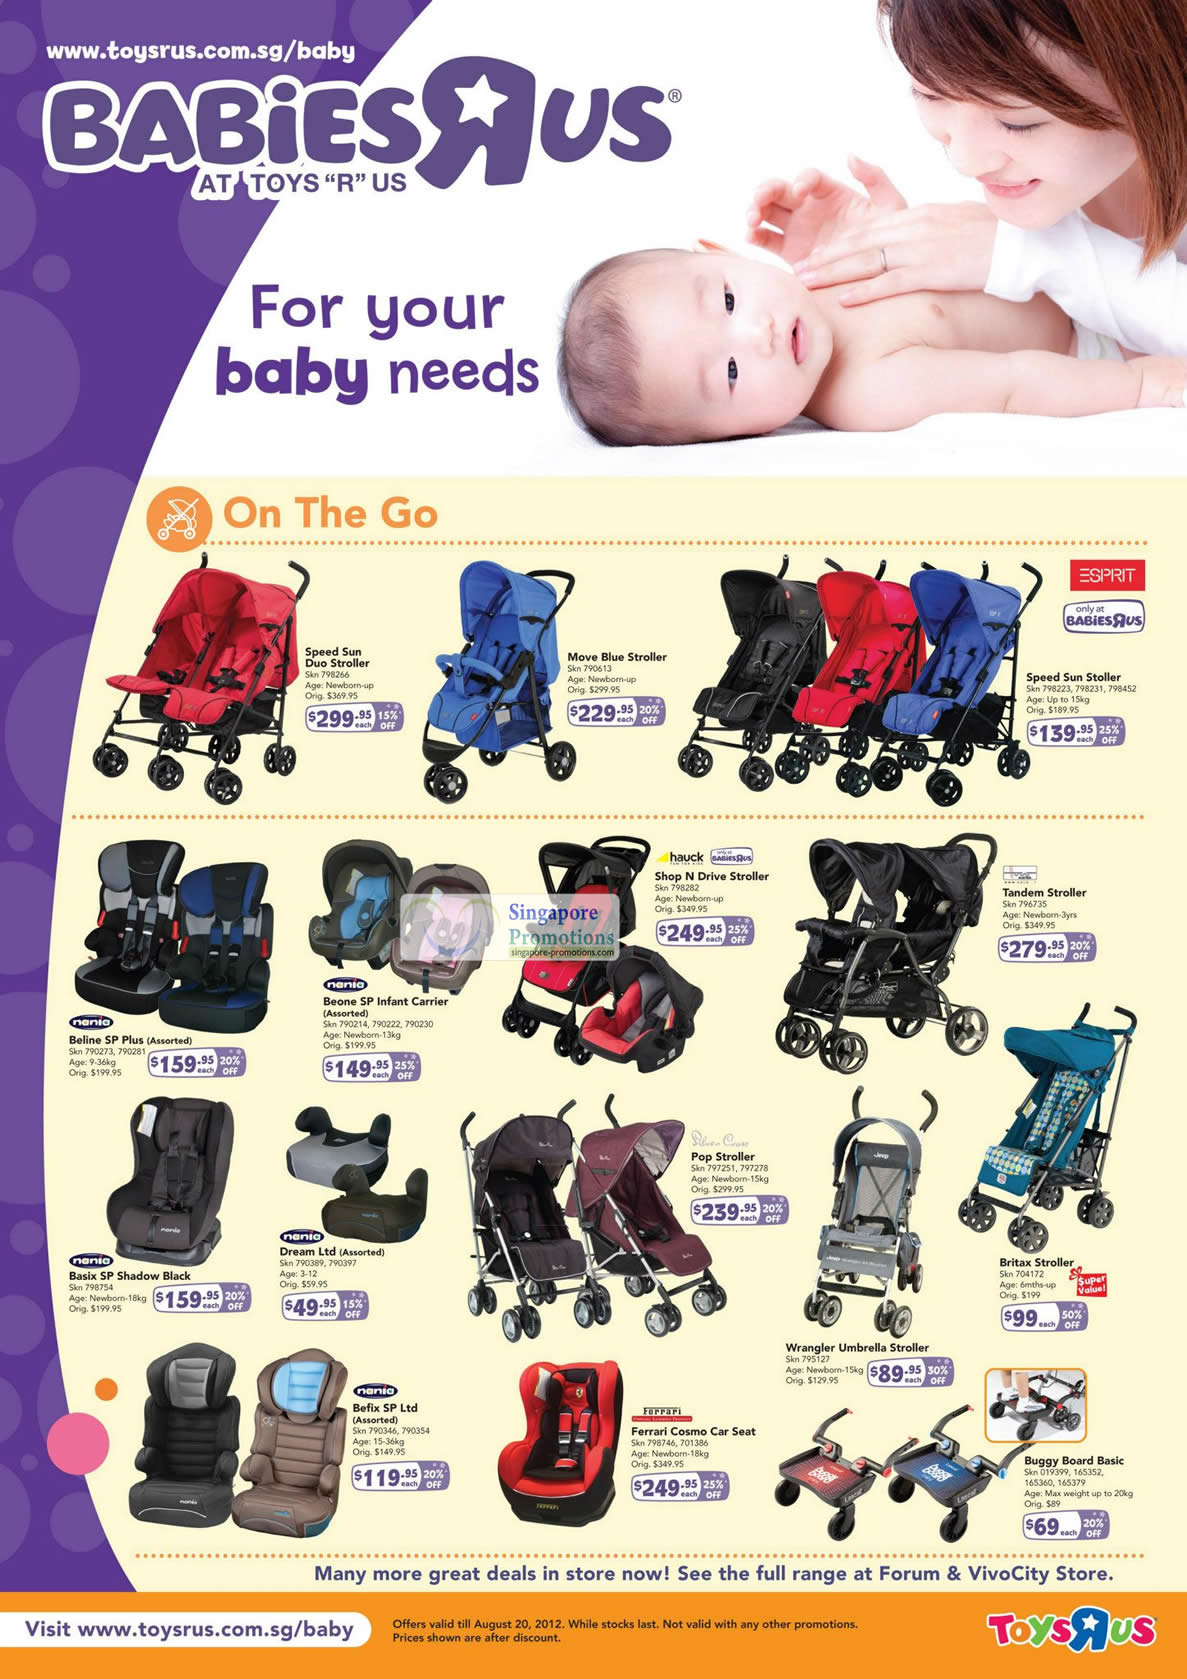 ESPRIT Speed Sun Stoller, ESPRIT Move Blue Stroller, ESPRIT Speed Sun Duo Stroller, Nania Beline SP Plus , Nania Beone SP Infant Carrier, hauck Shop N Drive Stroller, Nania Basix SP Shadow Black, Nania Dream Ltd, Nania Befix SP Ltd, Ferrari Cosmo Car Seat, Wrangler Umbrella Stroller, Britax Stroller